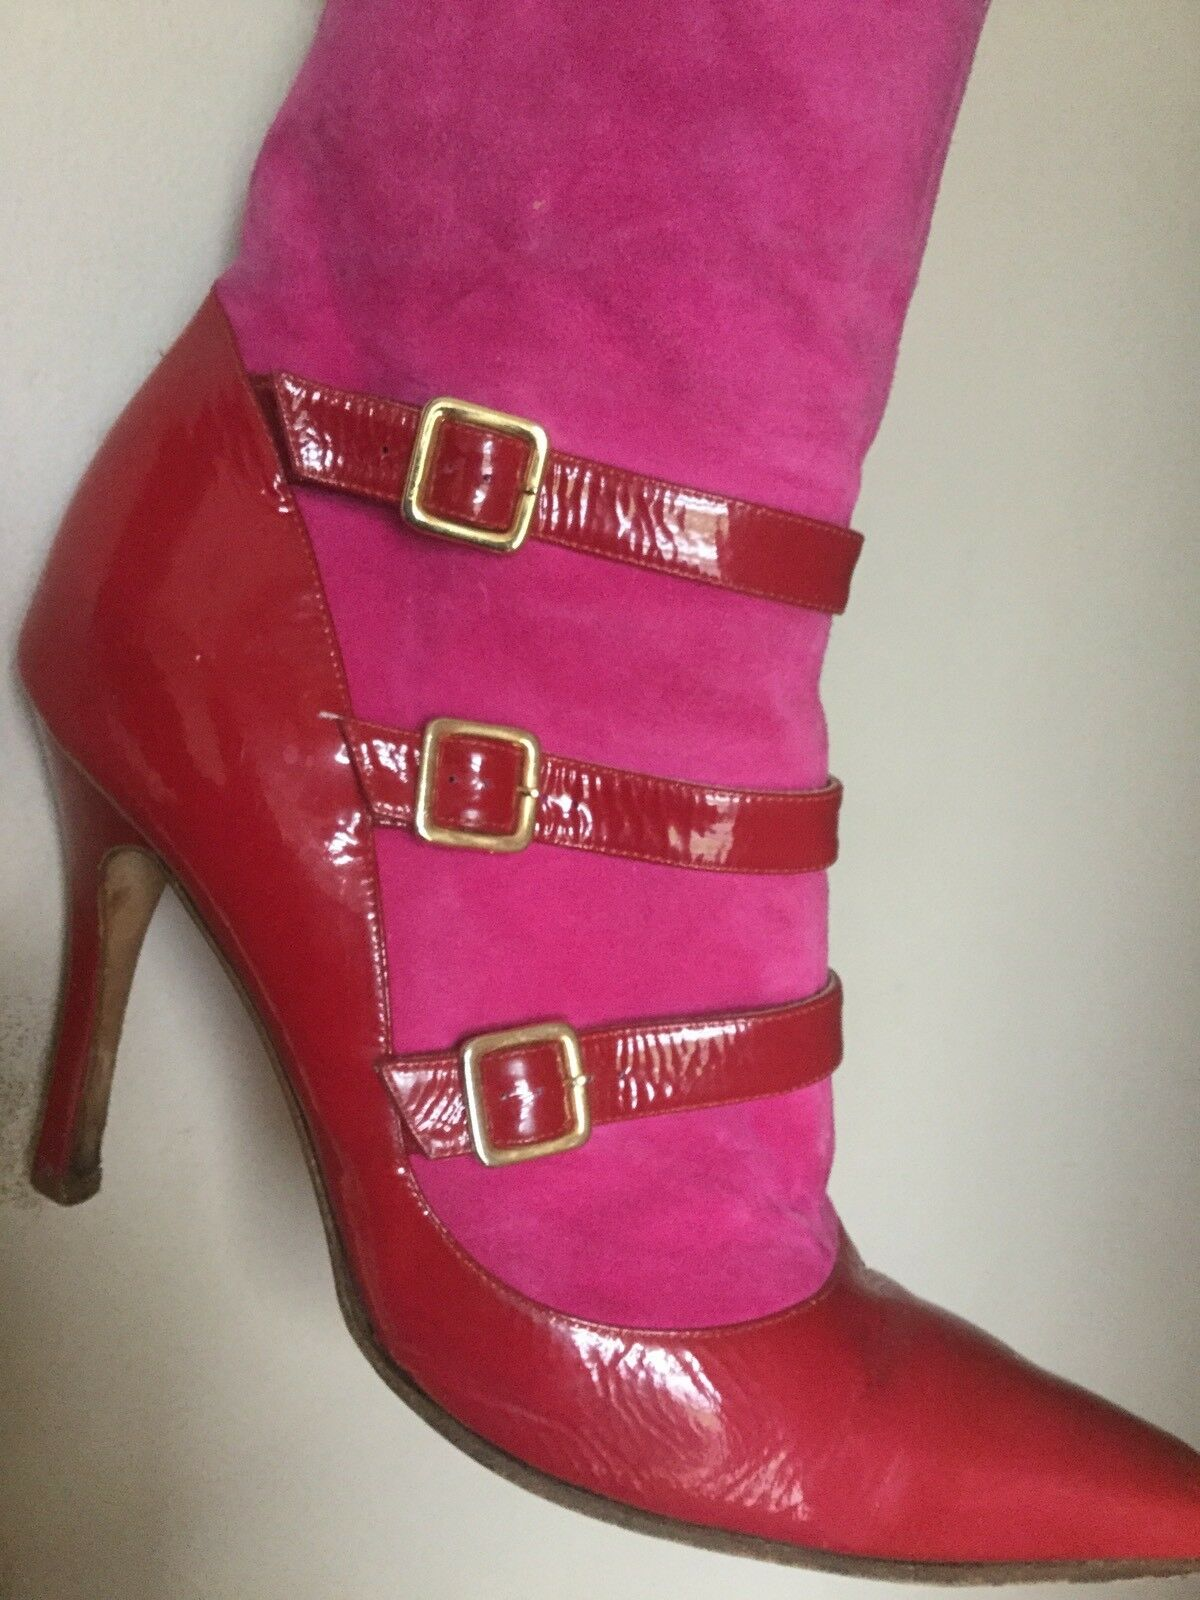 GINA PINK RED PATENT SUEDE LEATHER CHAP BOOTS DESIGNER SEXY 7 40